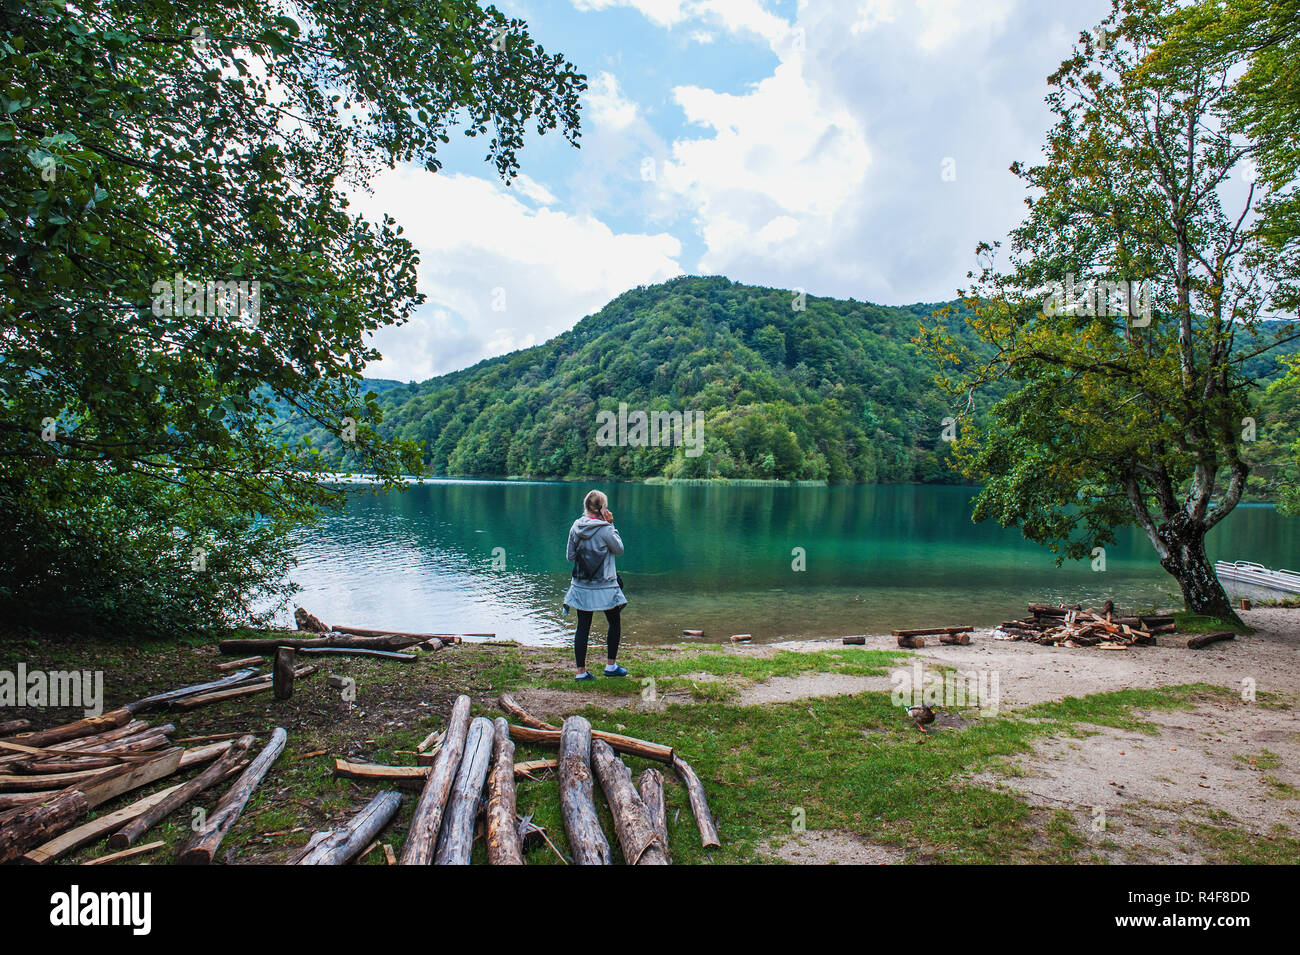 The girl on the shore of one of the most amazing lakes Plitvice in Croatia speaks on the smartphone. Pathological attachment to the means of communica - Stock Image